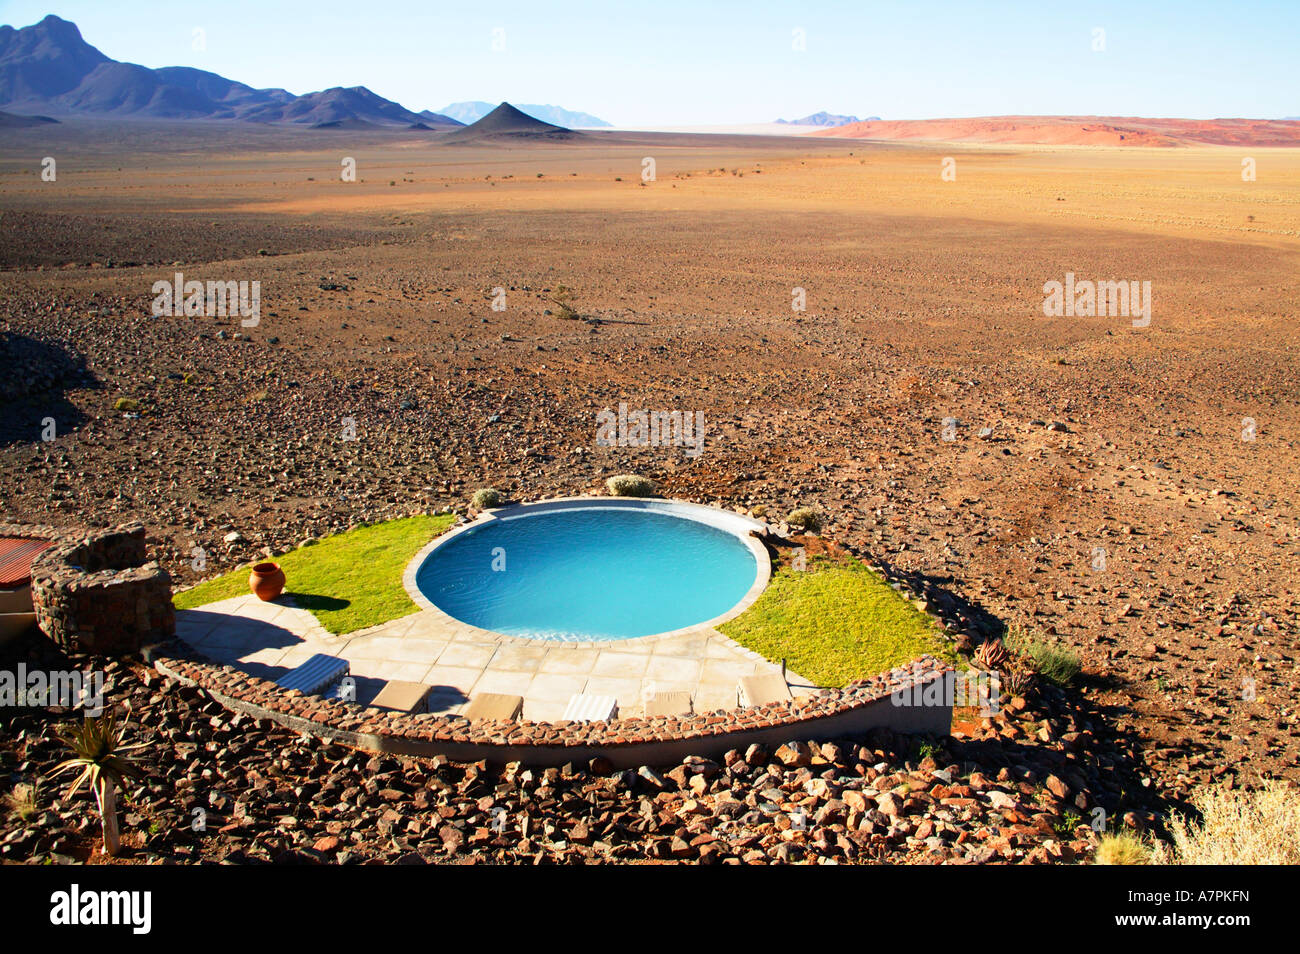 A circular swimming pool in an exclusive lodge located in a vast desert plain Namibrand Nature Reserve Namibia - Stock Image